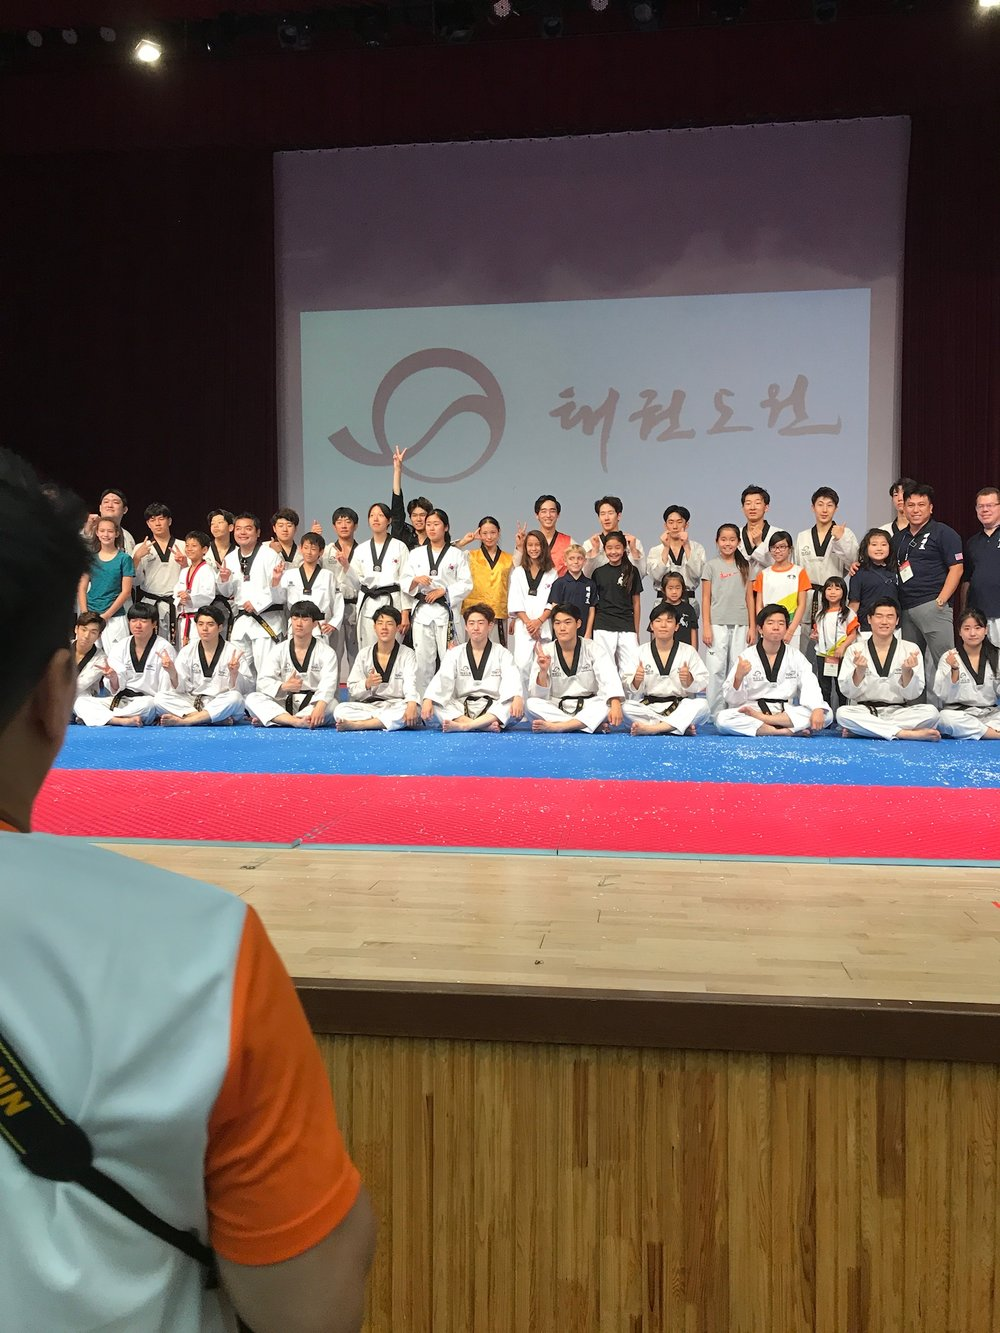 Taekwondo Culture Expo Korea 2017